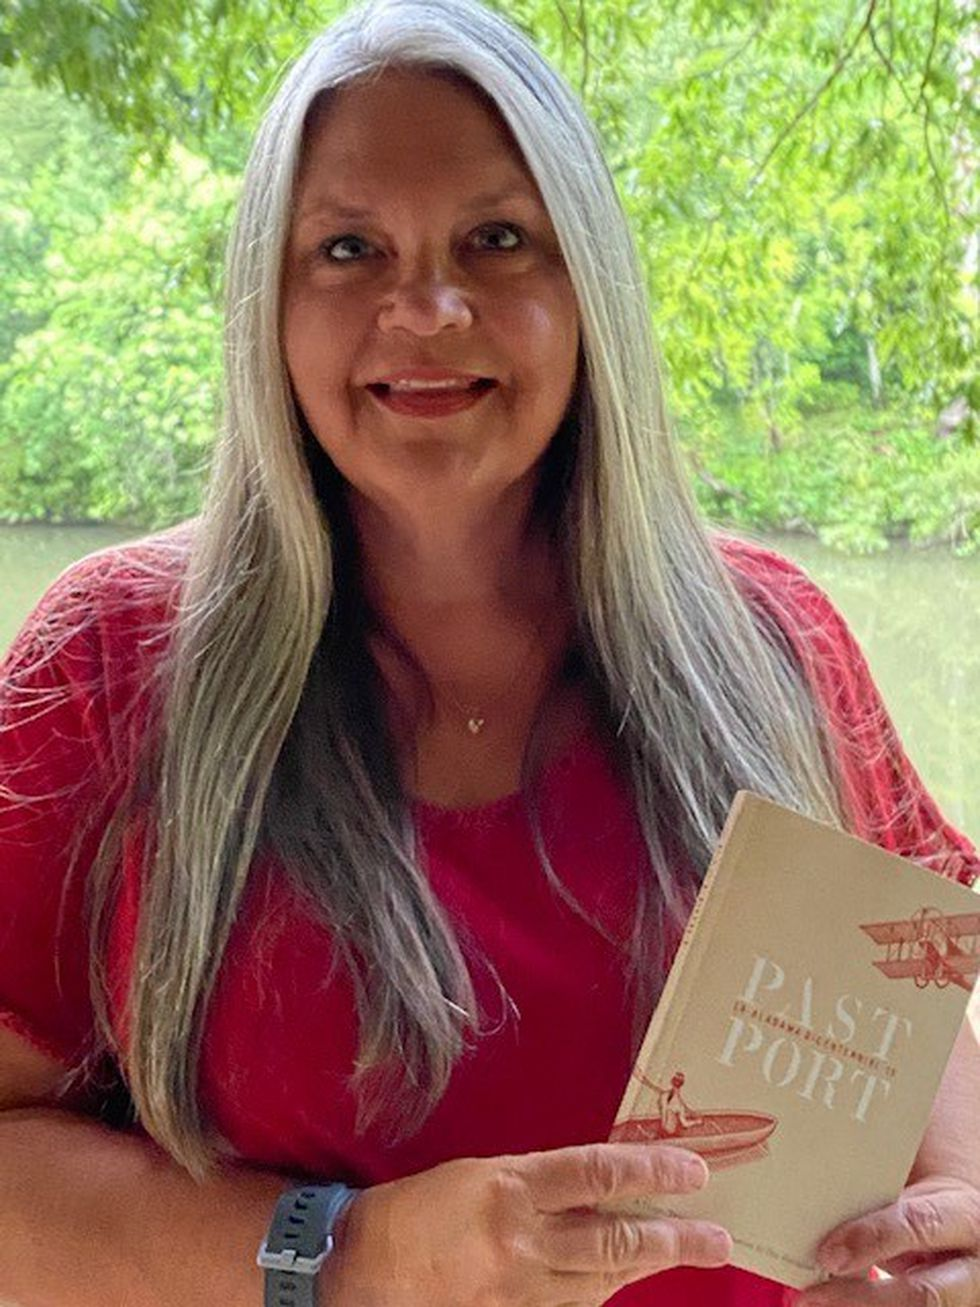 Goodwater, Ala. resident Shelley Wood's name was drawn from a pool of those who traveled the state in 2018 and 2019 and had their PastPort stamped in each of Alabama's 67 counties.